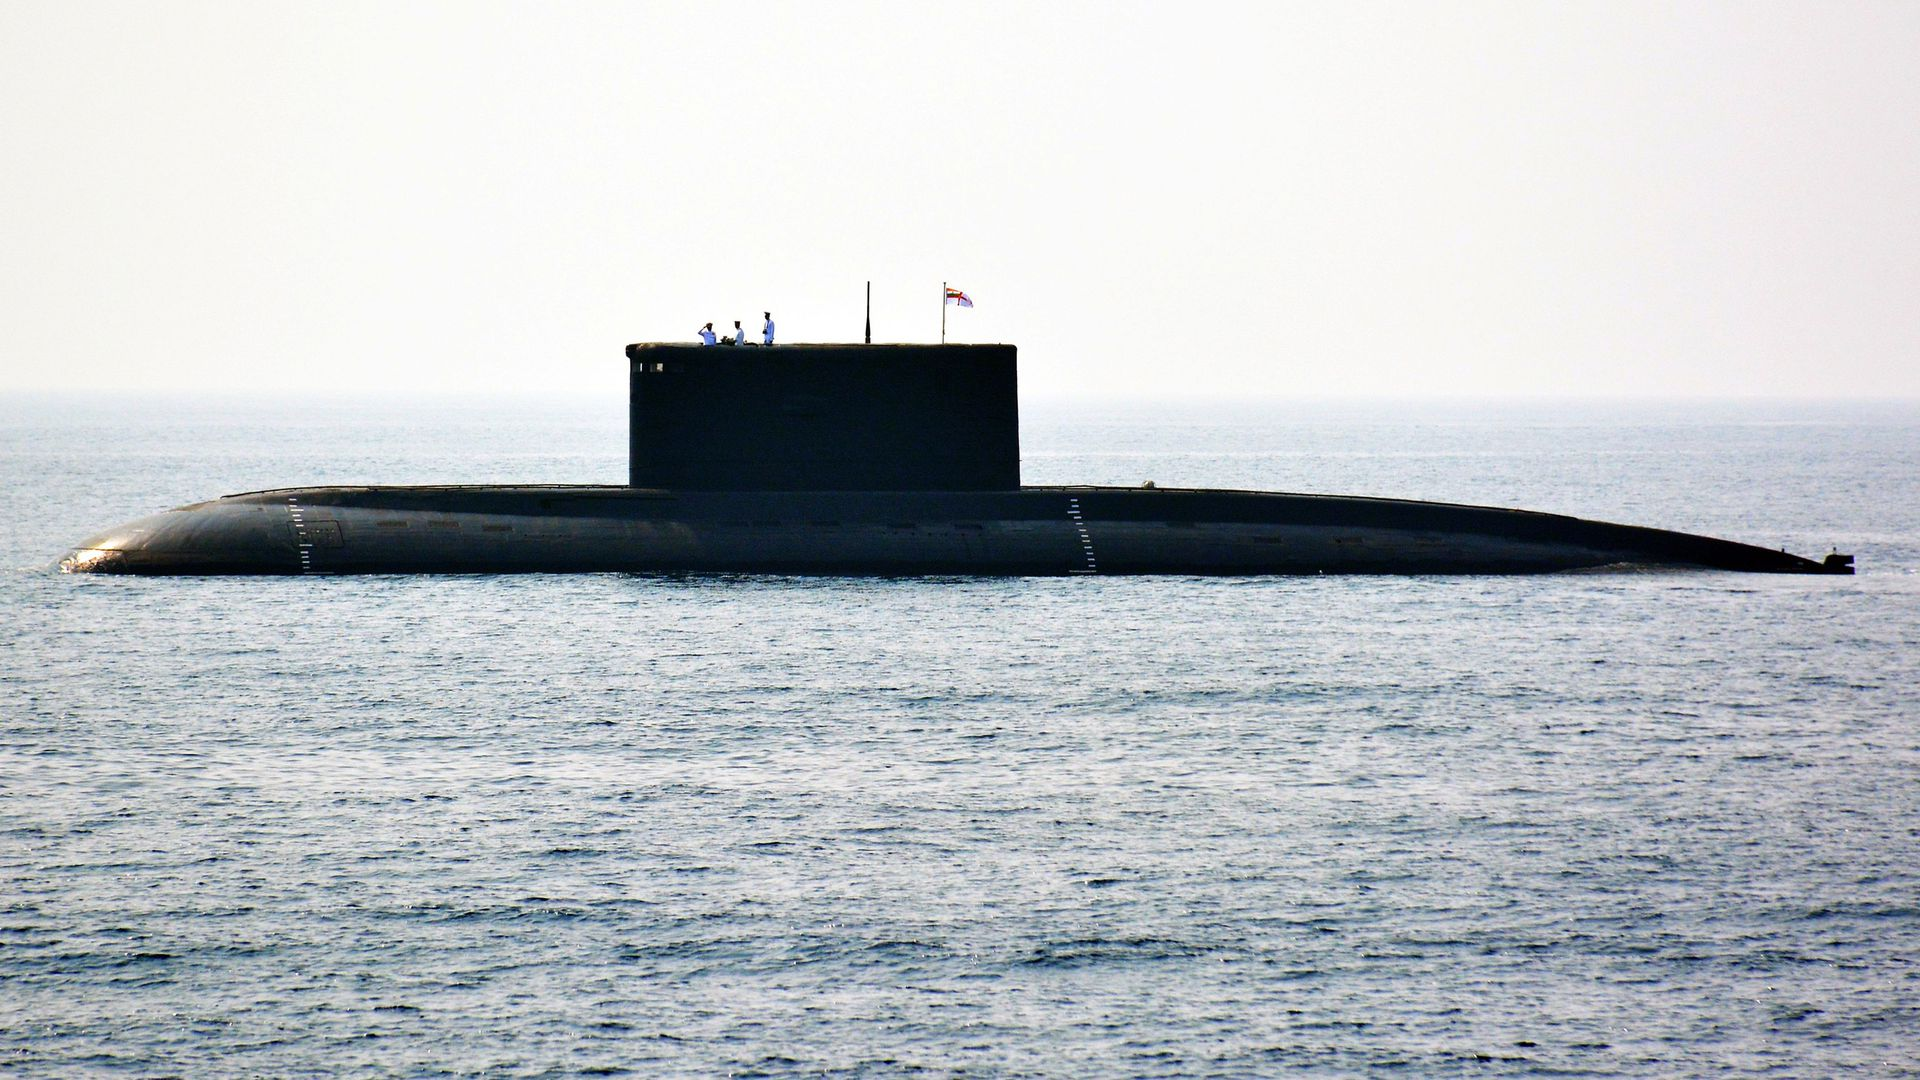 Indian submarine at sea